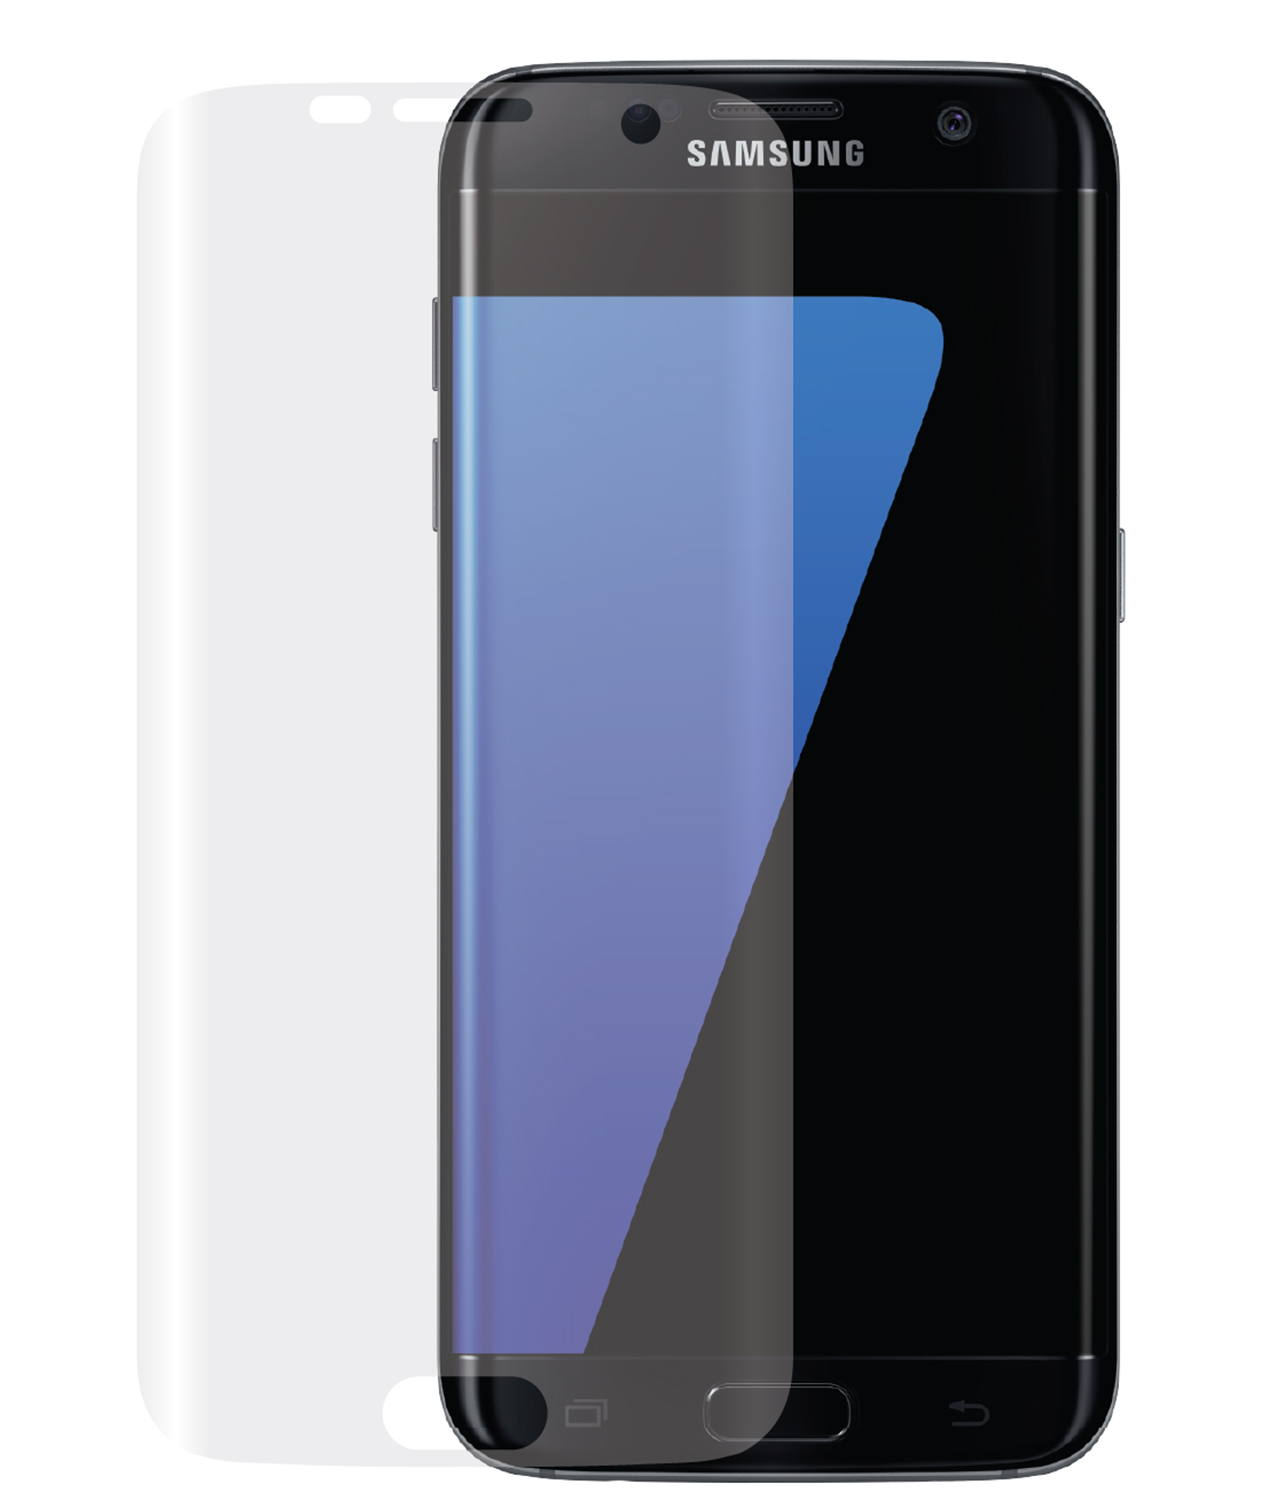 Curved Display of the Samsung Galaxy S7 Edge